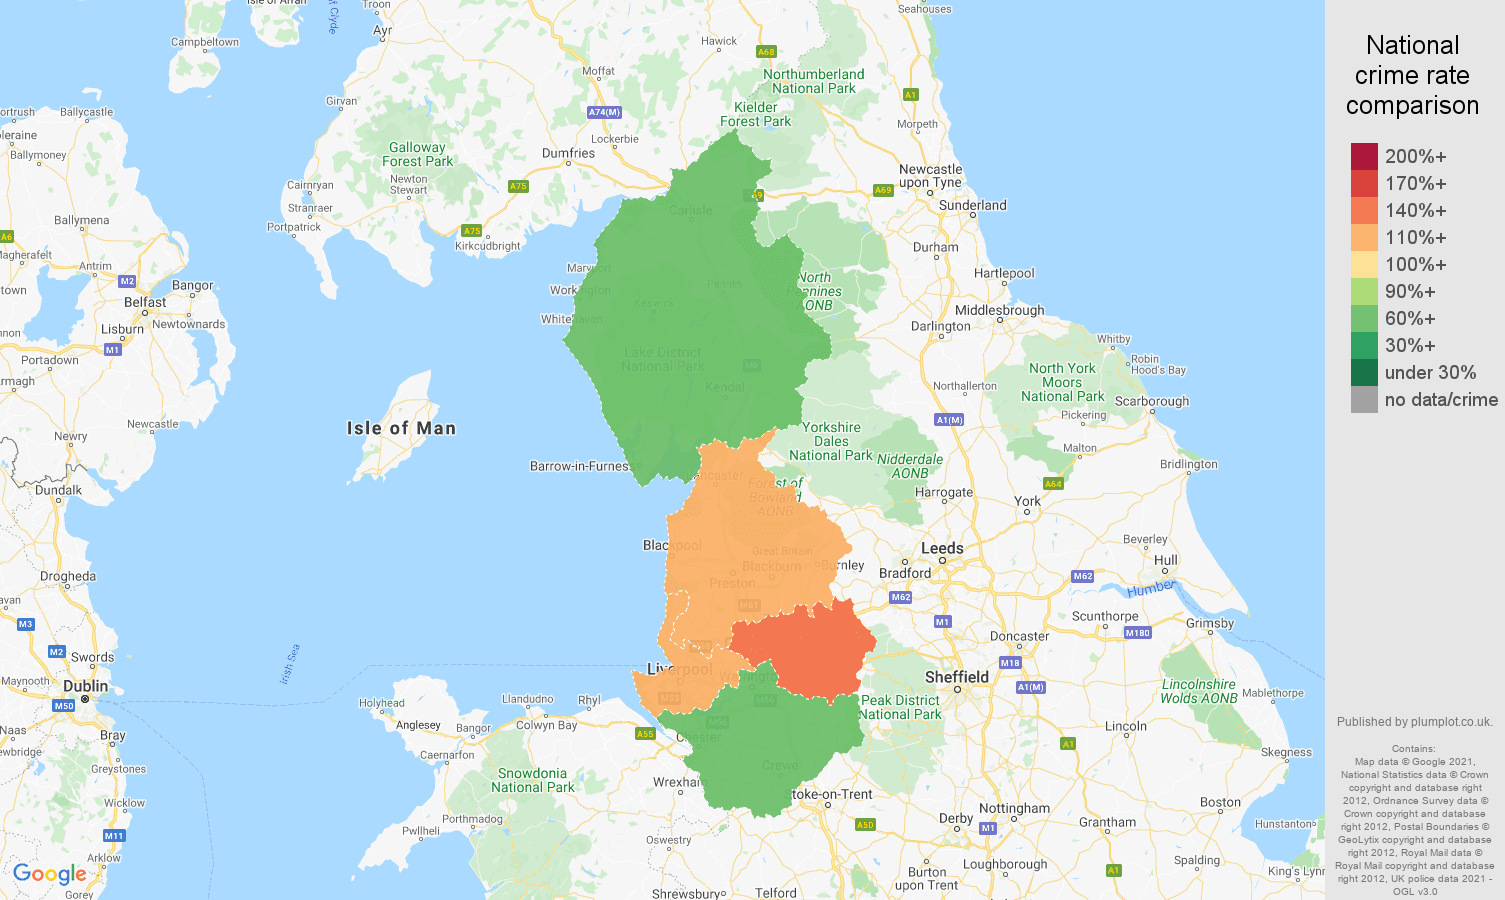 North West other crime rate comparison map